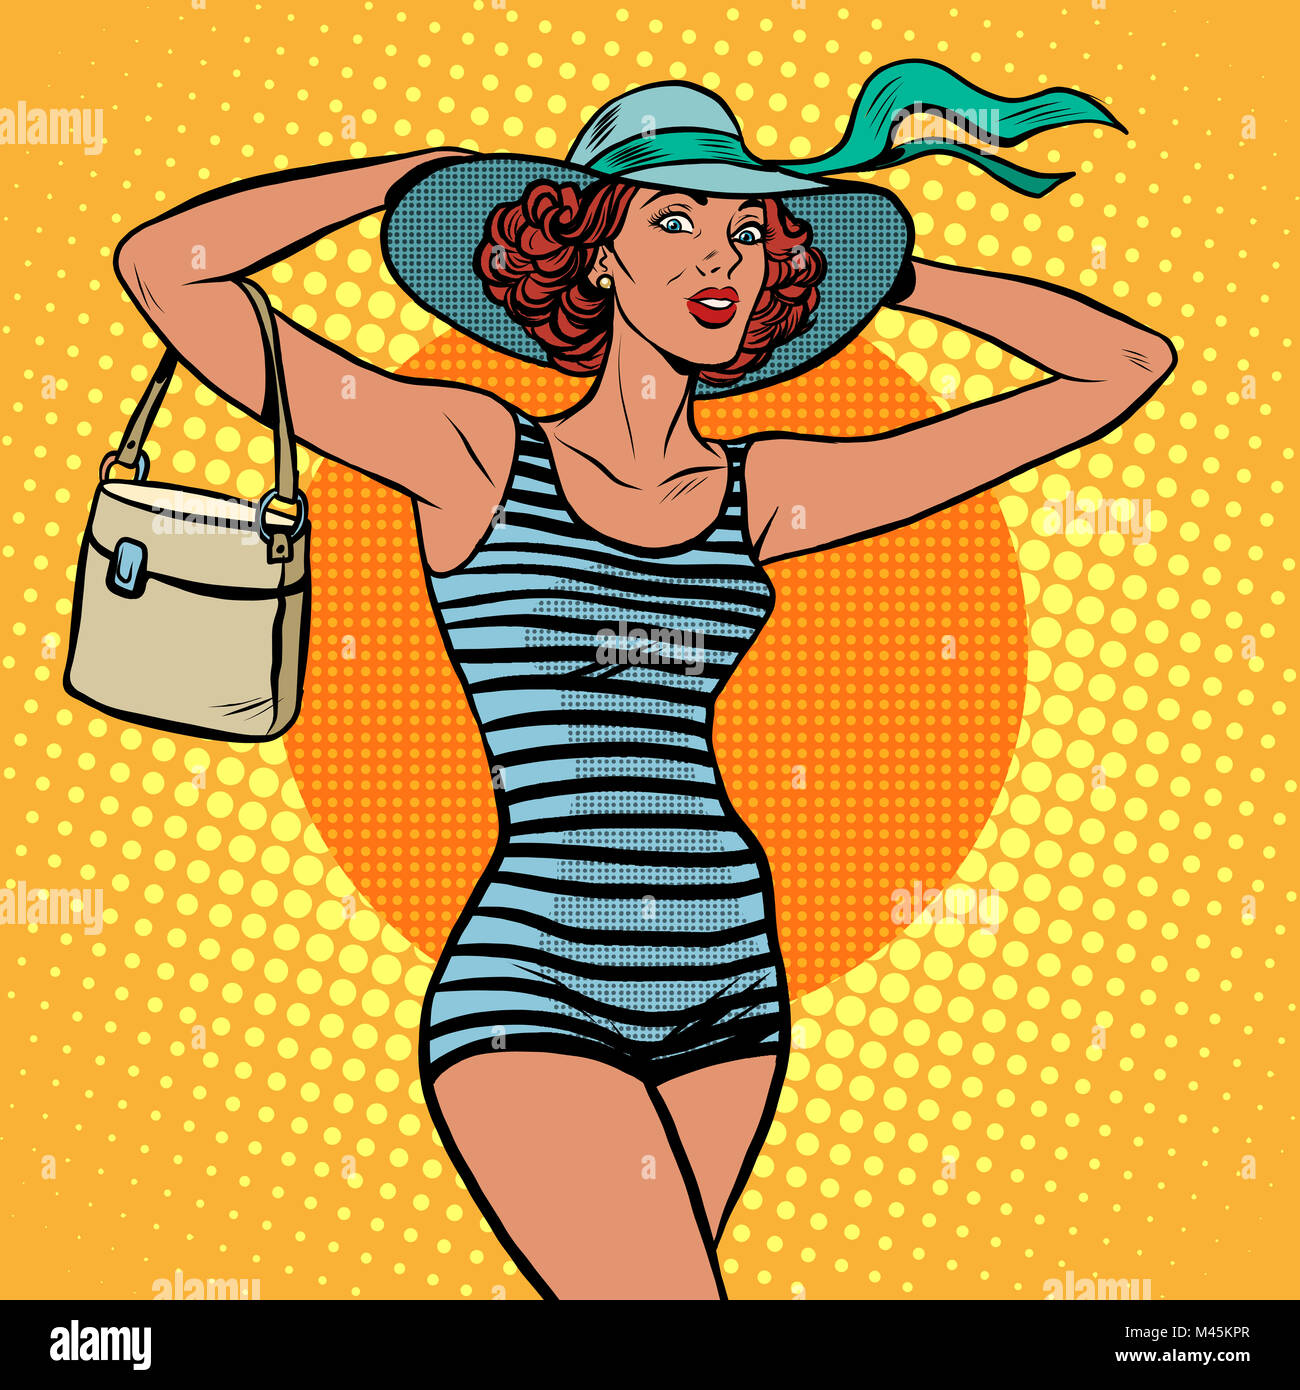 Girl retro bather - Stock Image